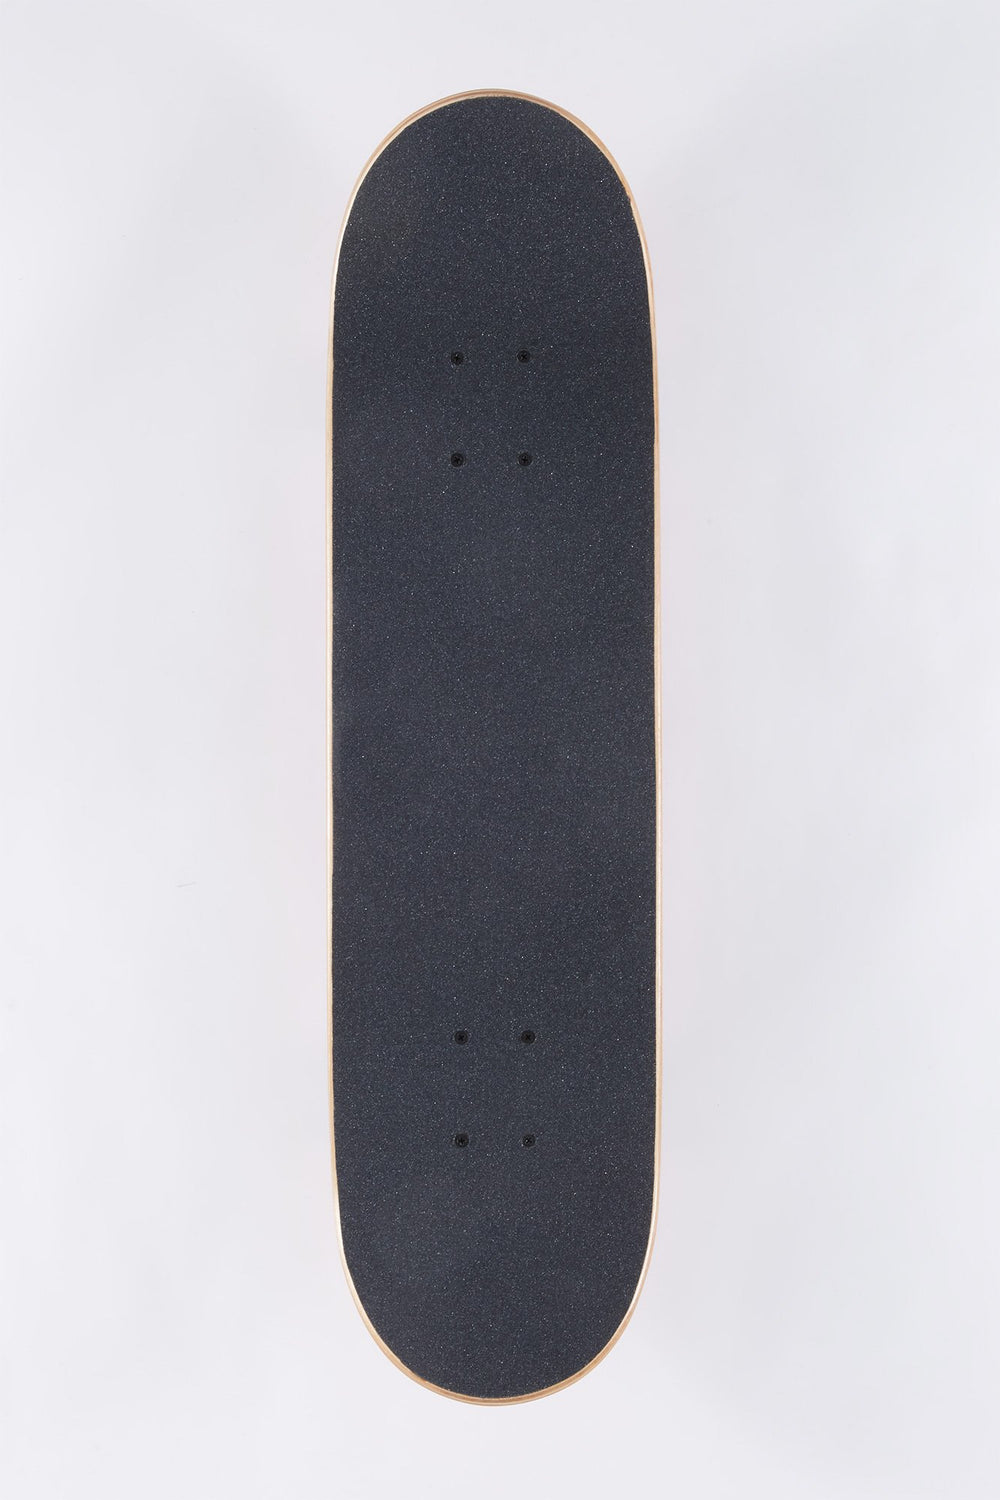 Death Valley Pink Skull Skateboard 8